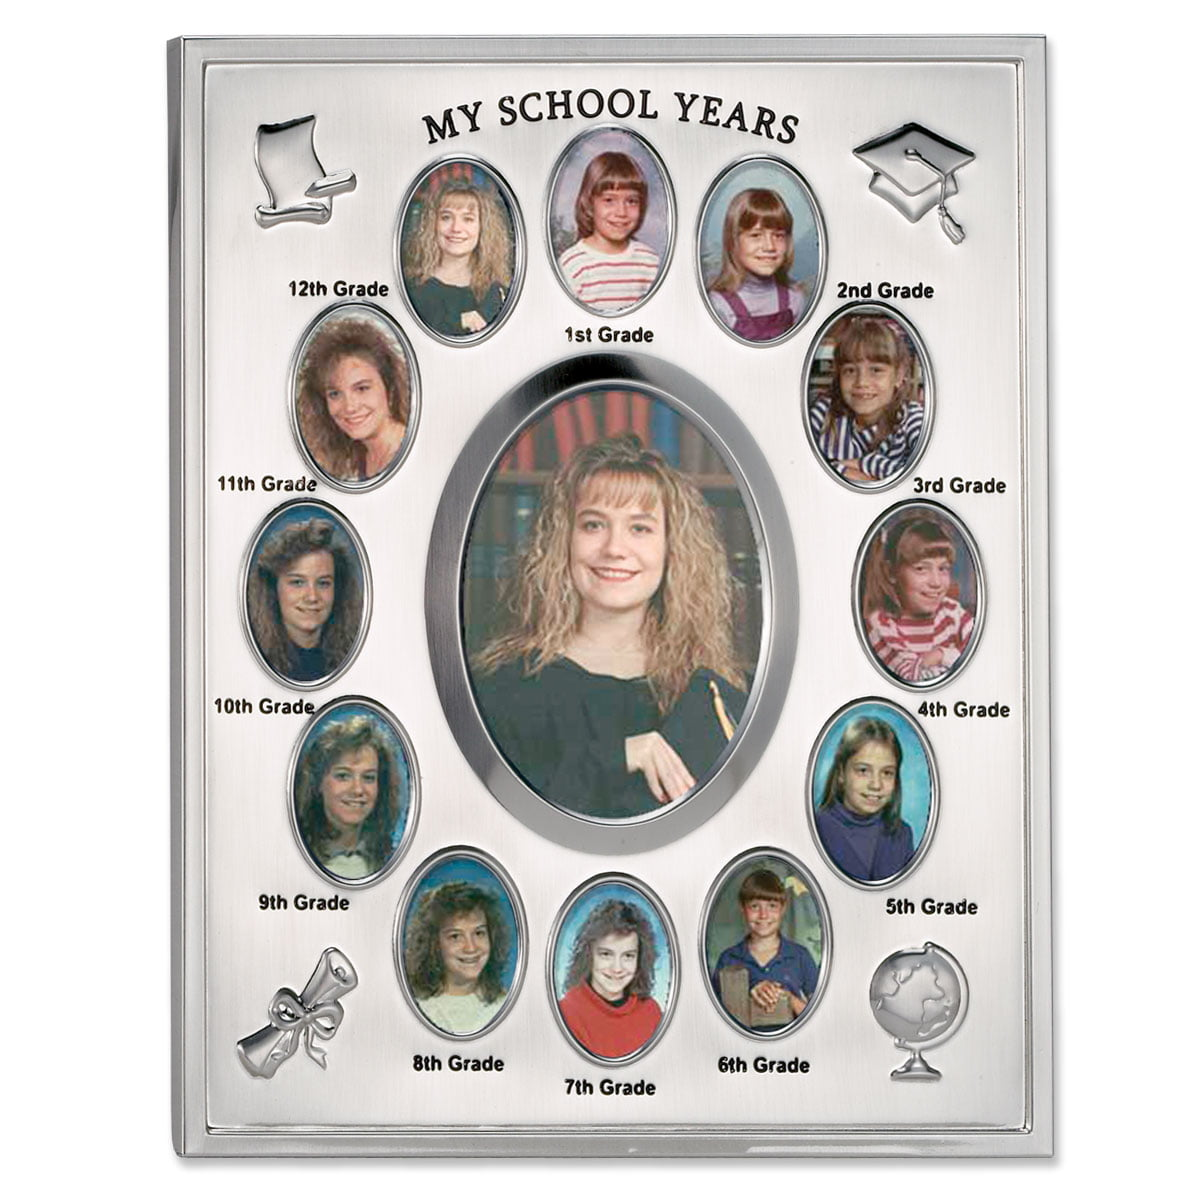 My School Years Silver Plated 8x10 Multi Picture Frame by Lawrence Frames